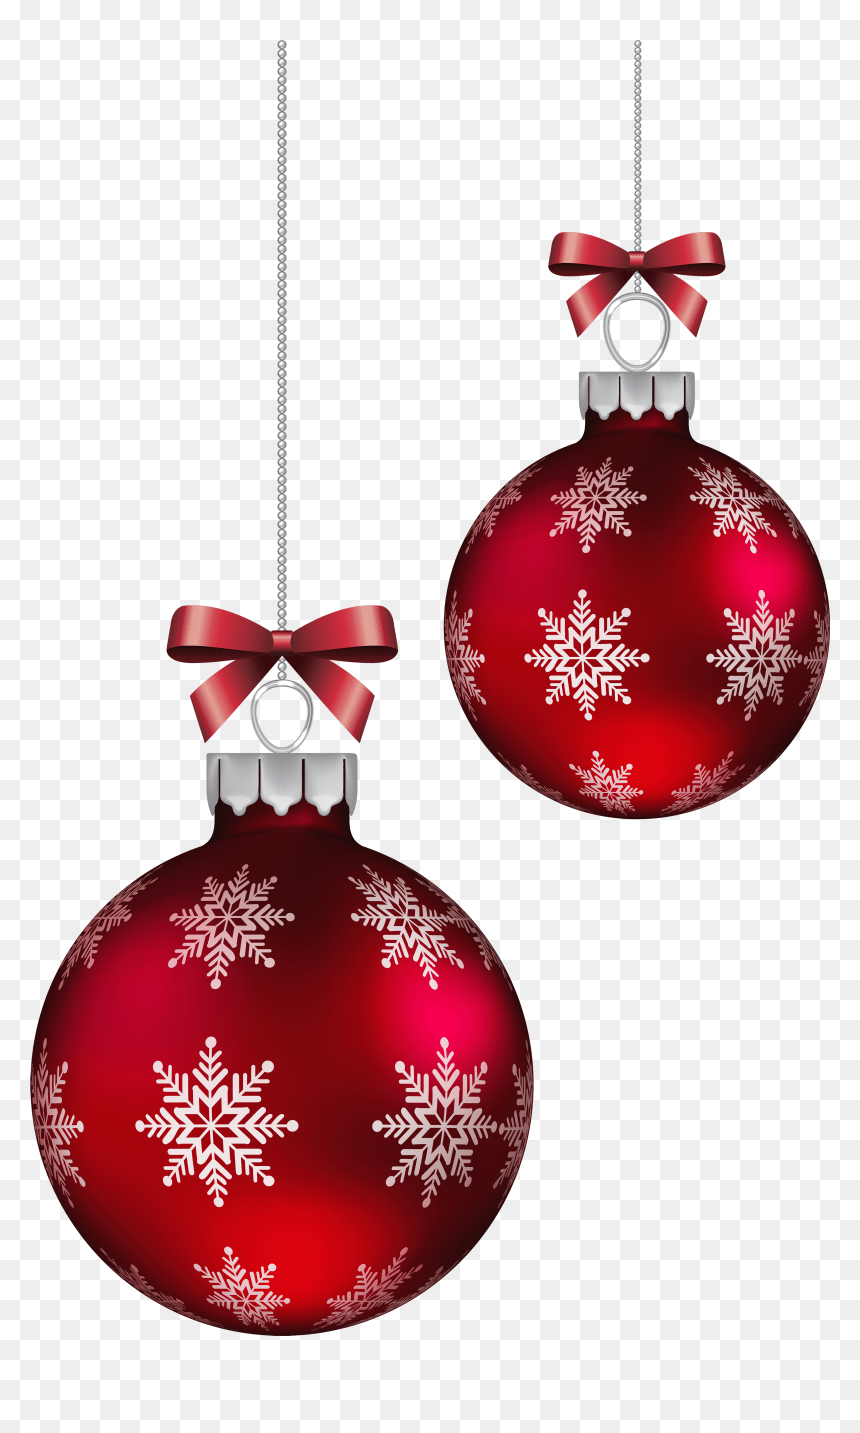 Transparent Christmas Ball Clipart Christmas Decorations Transparent Background Hd Png Download Vhv